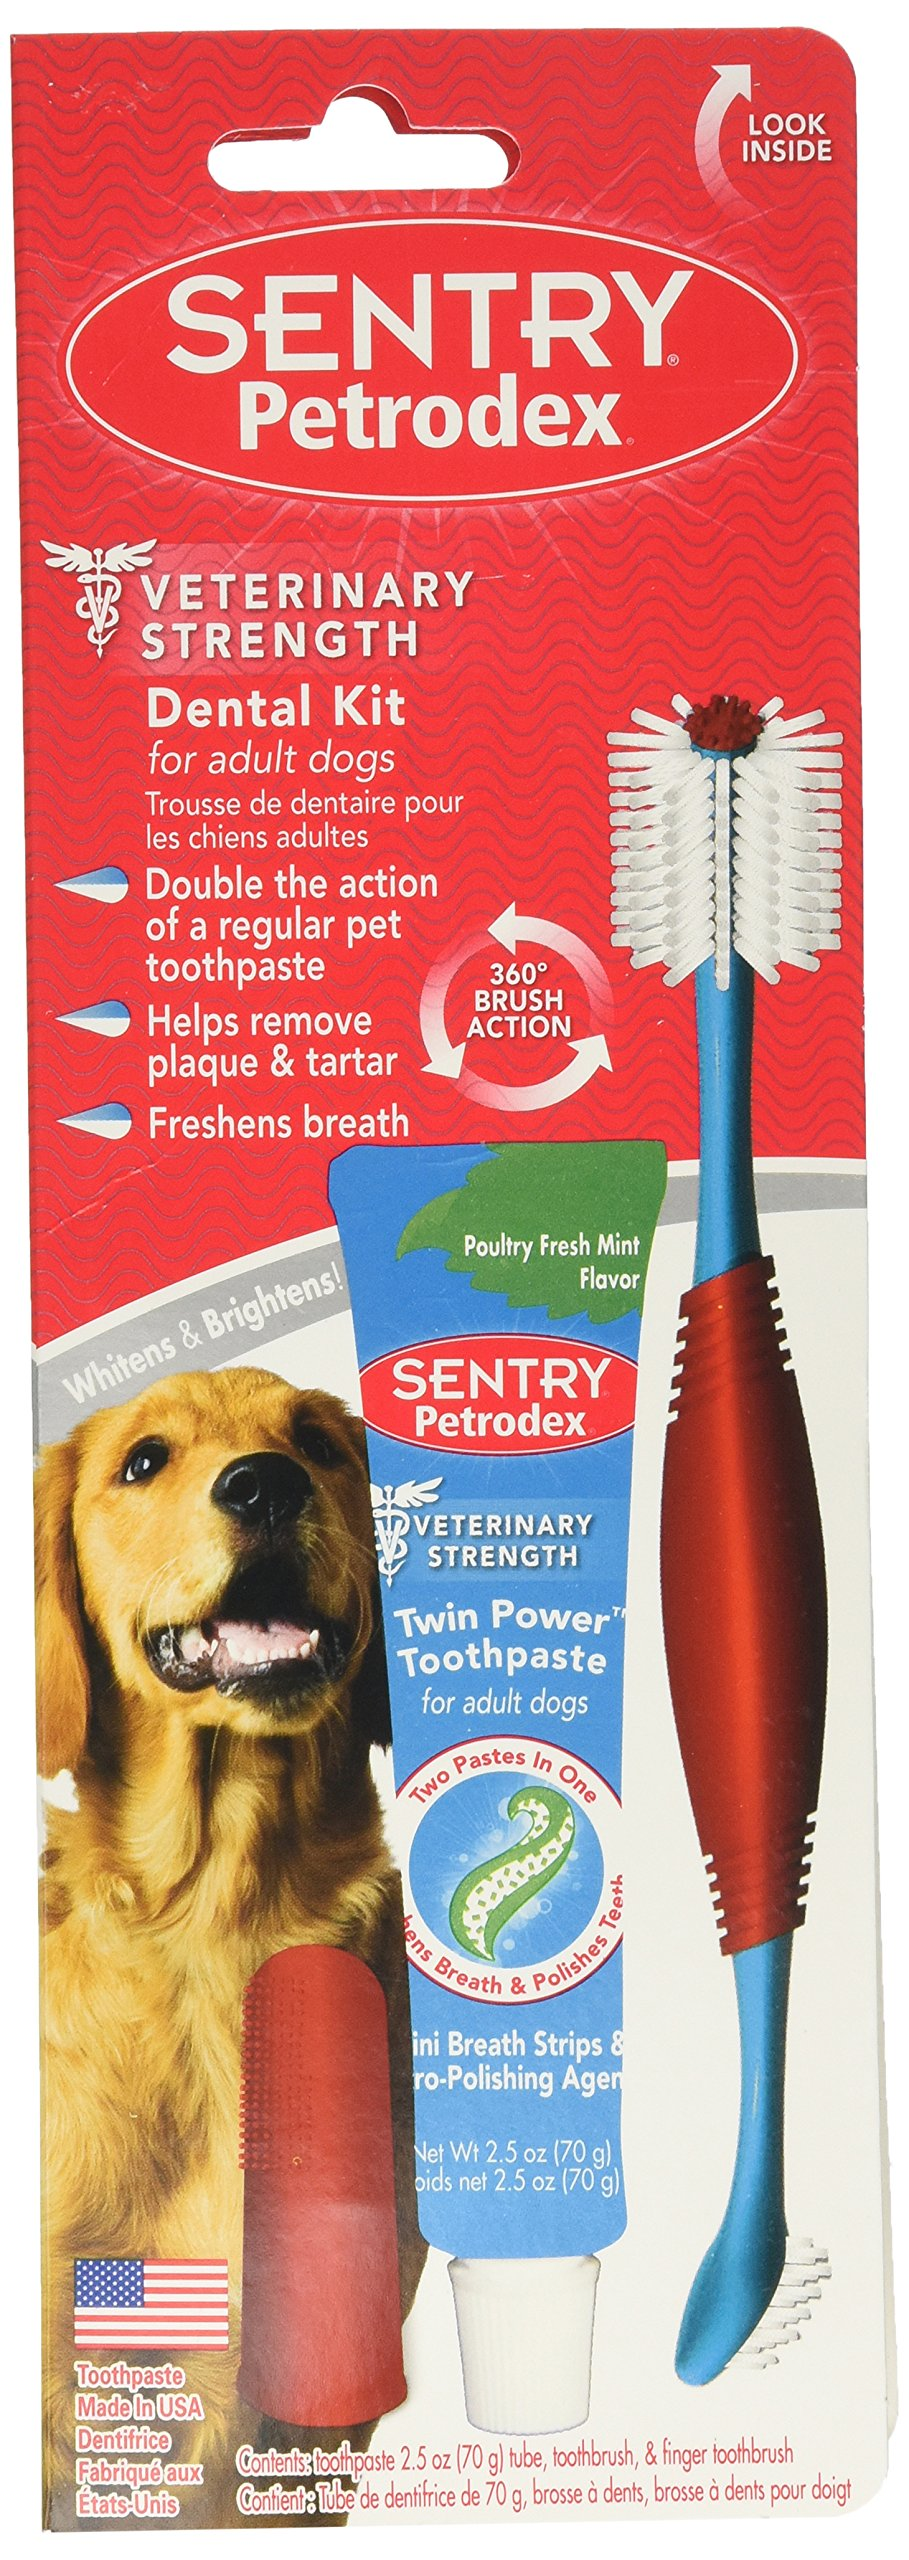 SENTRY Petrodex Dental Care Kit for Adult Dogs by Petrodex